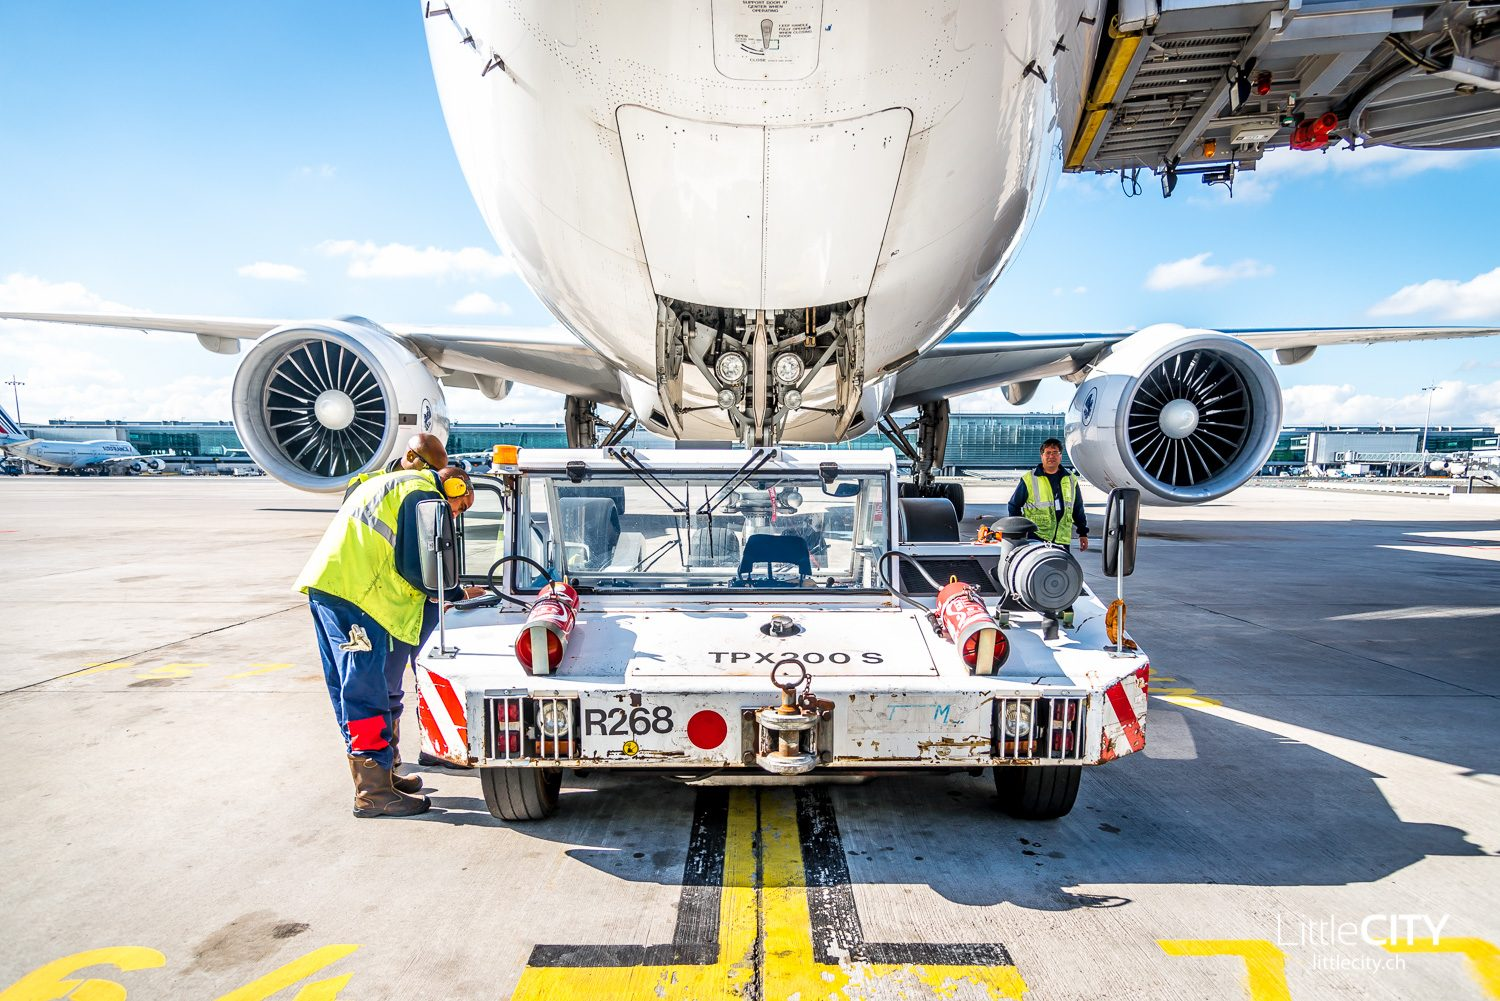 Pushback Car Boeing 777 Air France in Paris